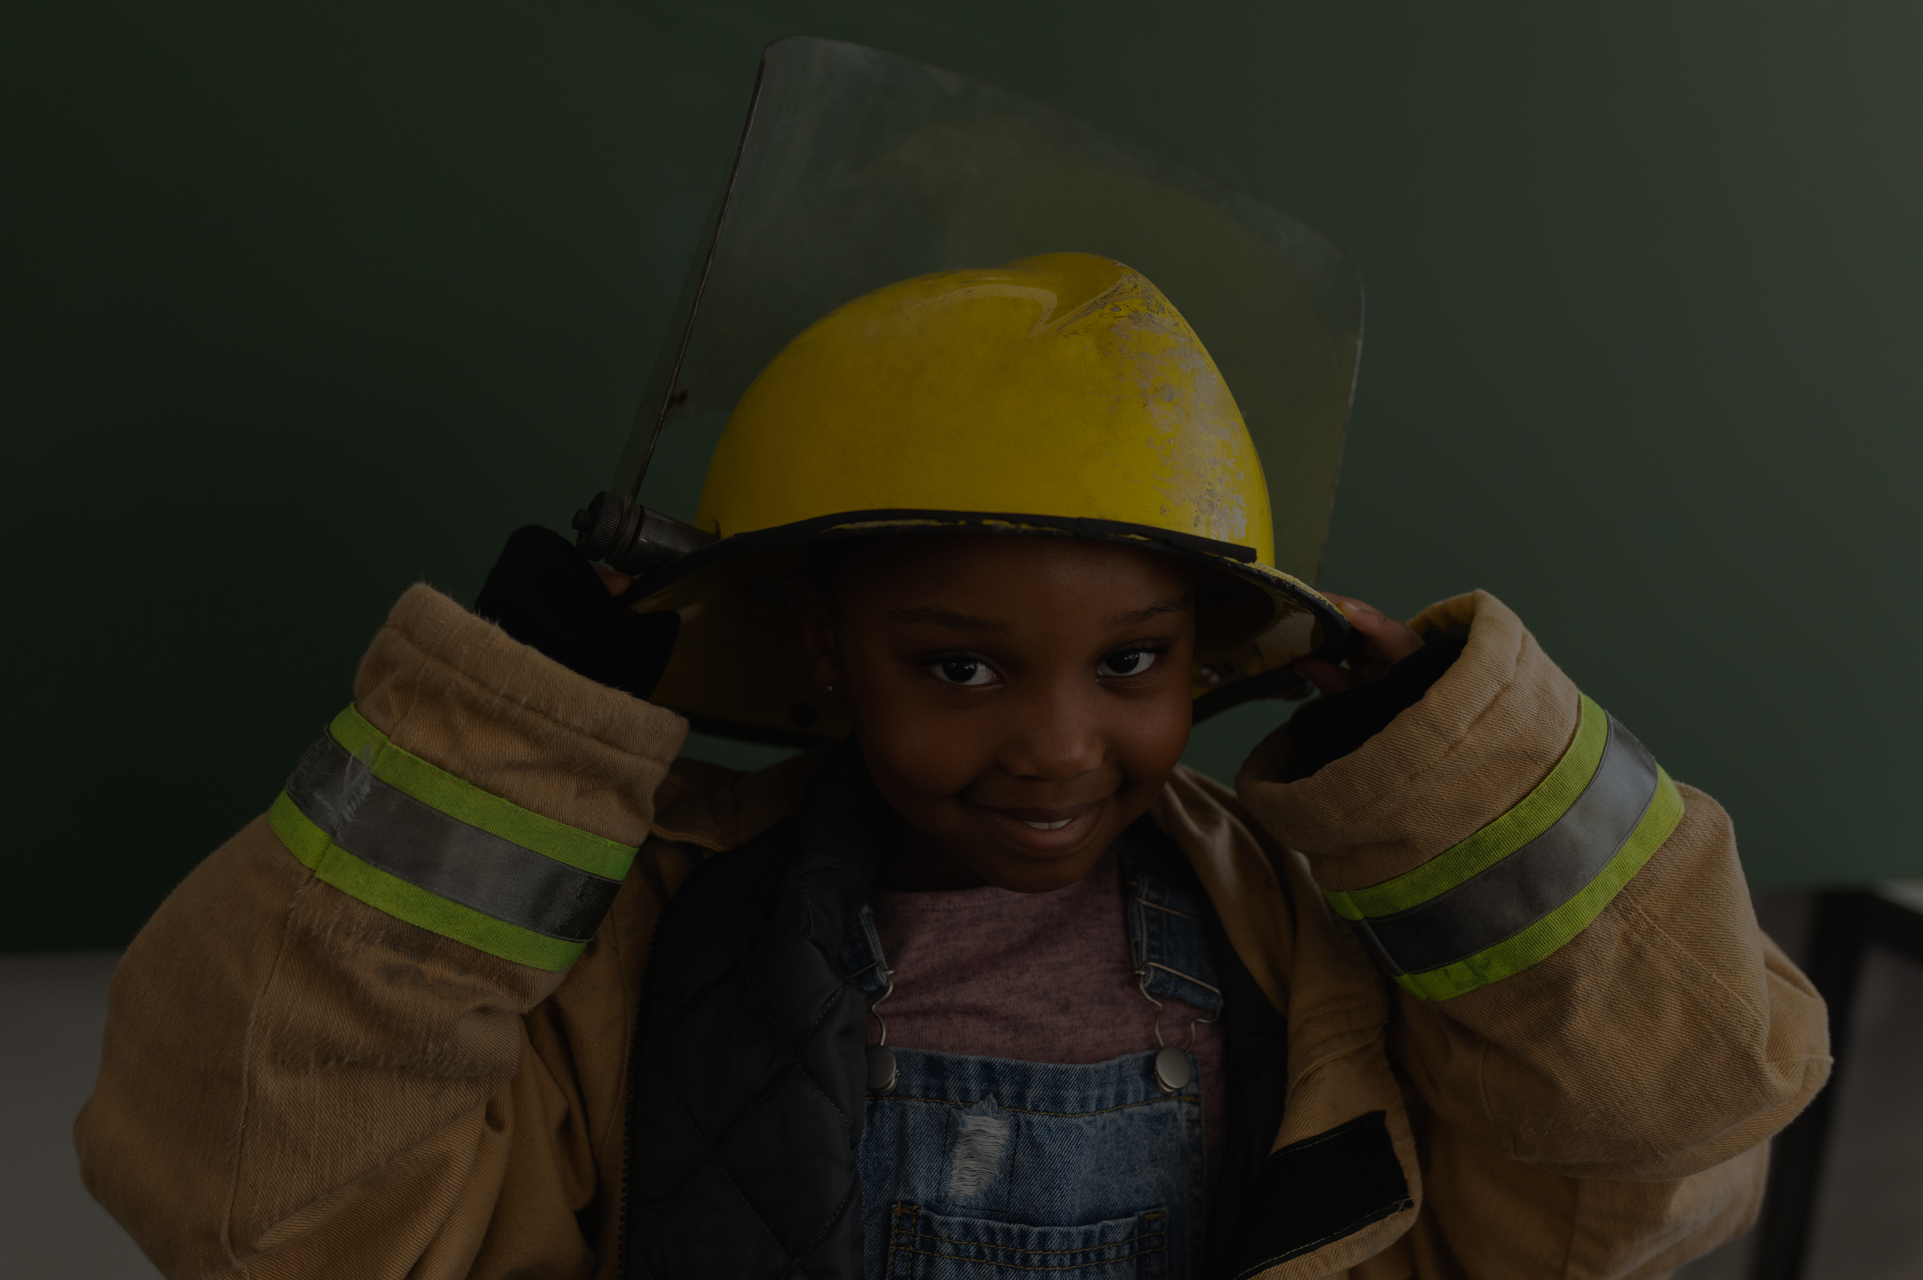 Fire Safety and Emergency Precautions In Your School